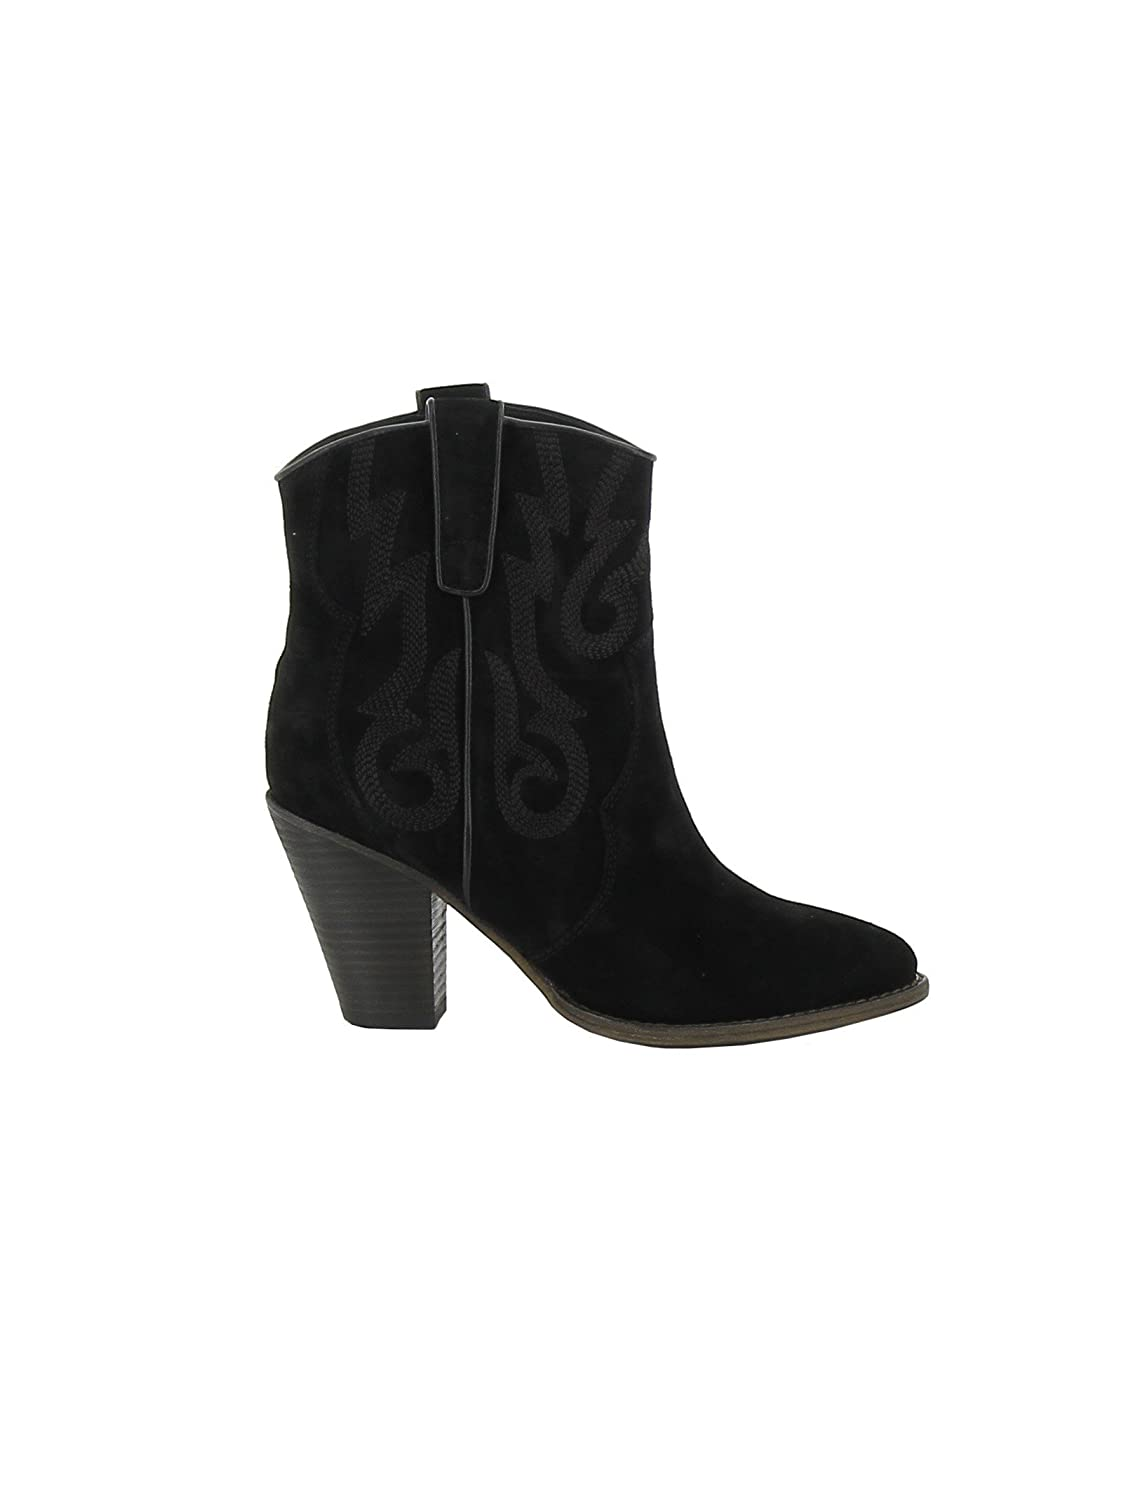 ASH WOMEN'S JOE001 BLACK SUEDE ANKLE BOOTS